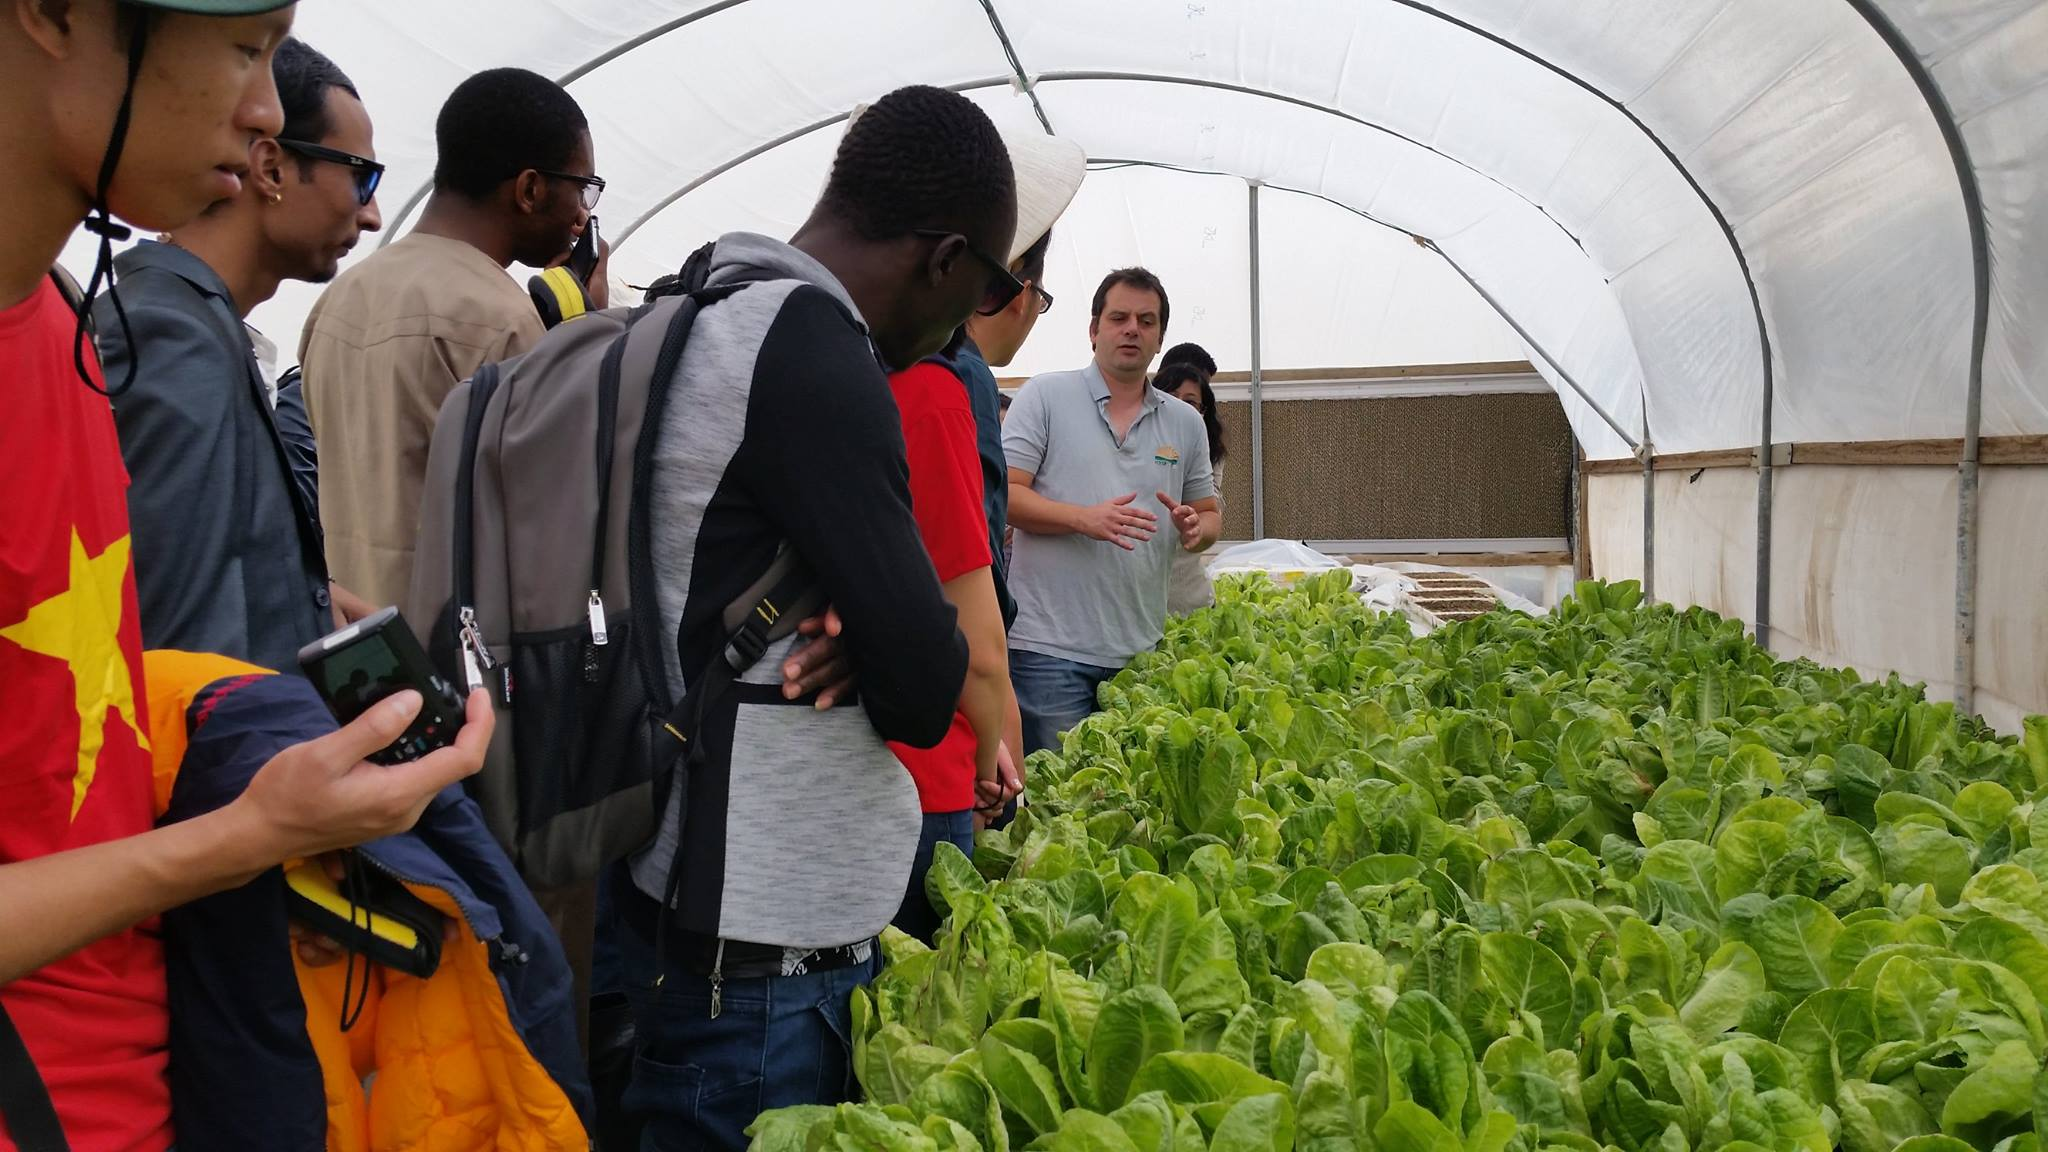 AICAT students learning from an Israeli farmer. Photo: courtesy